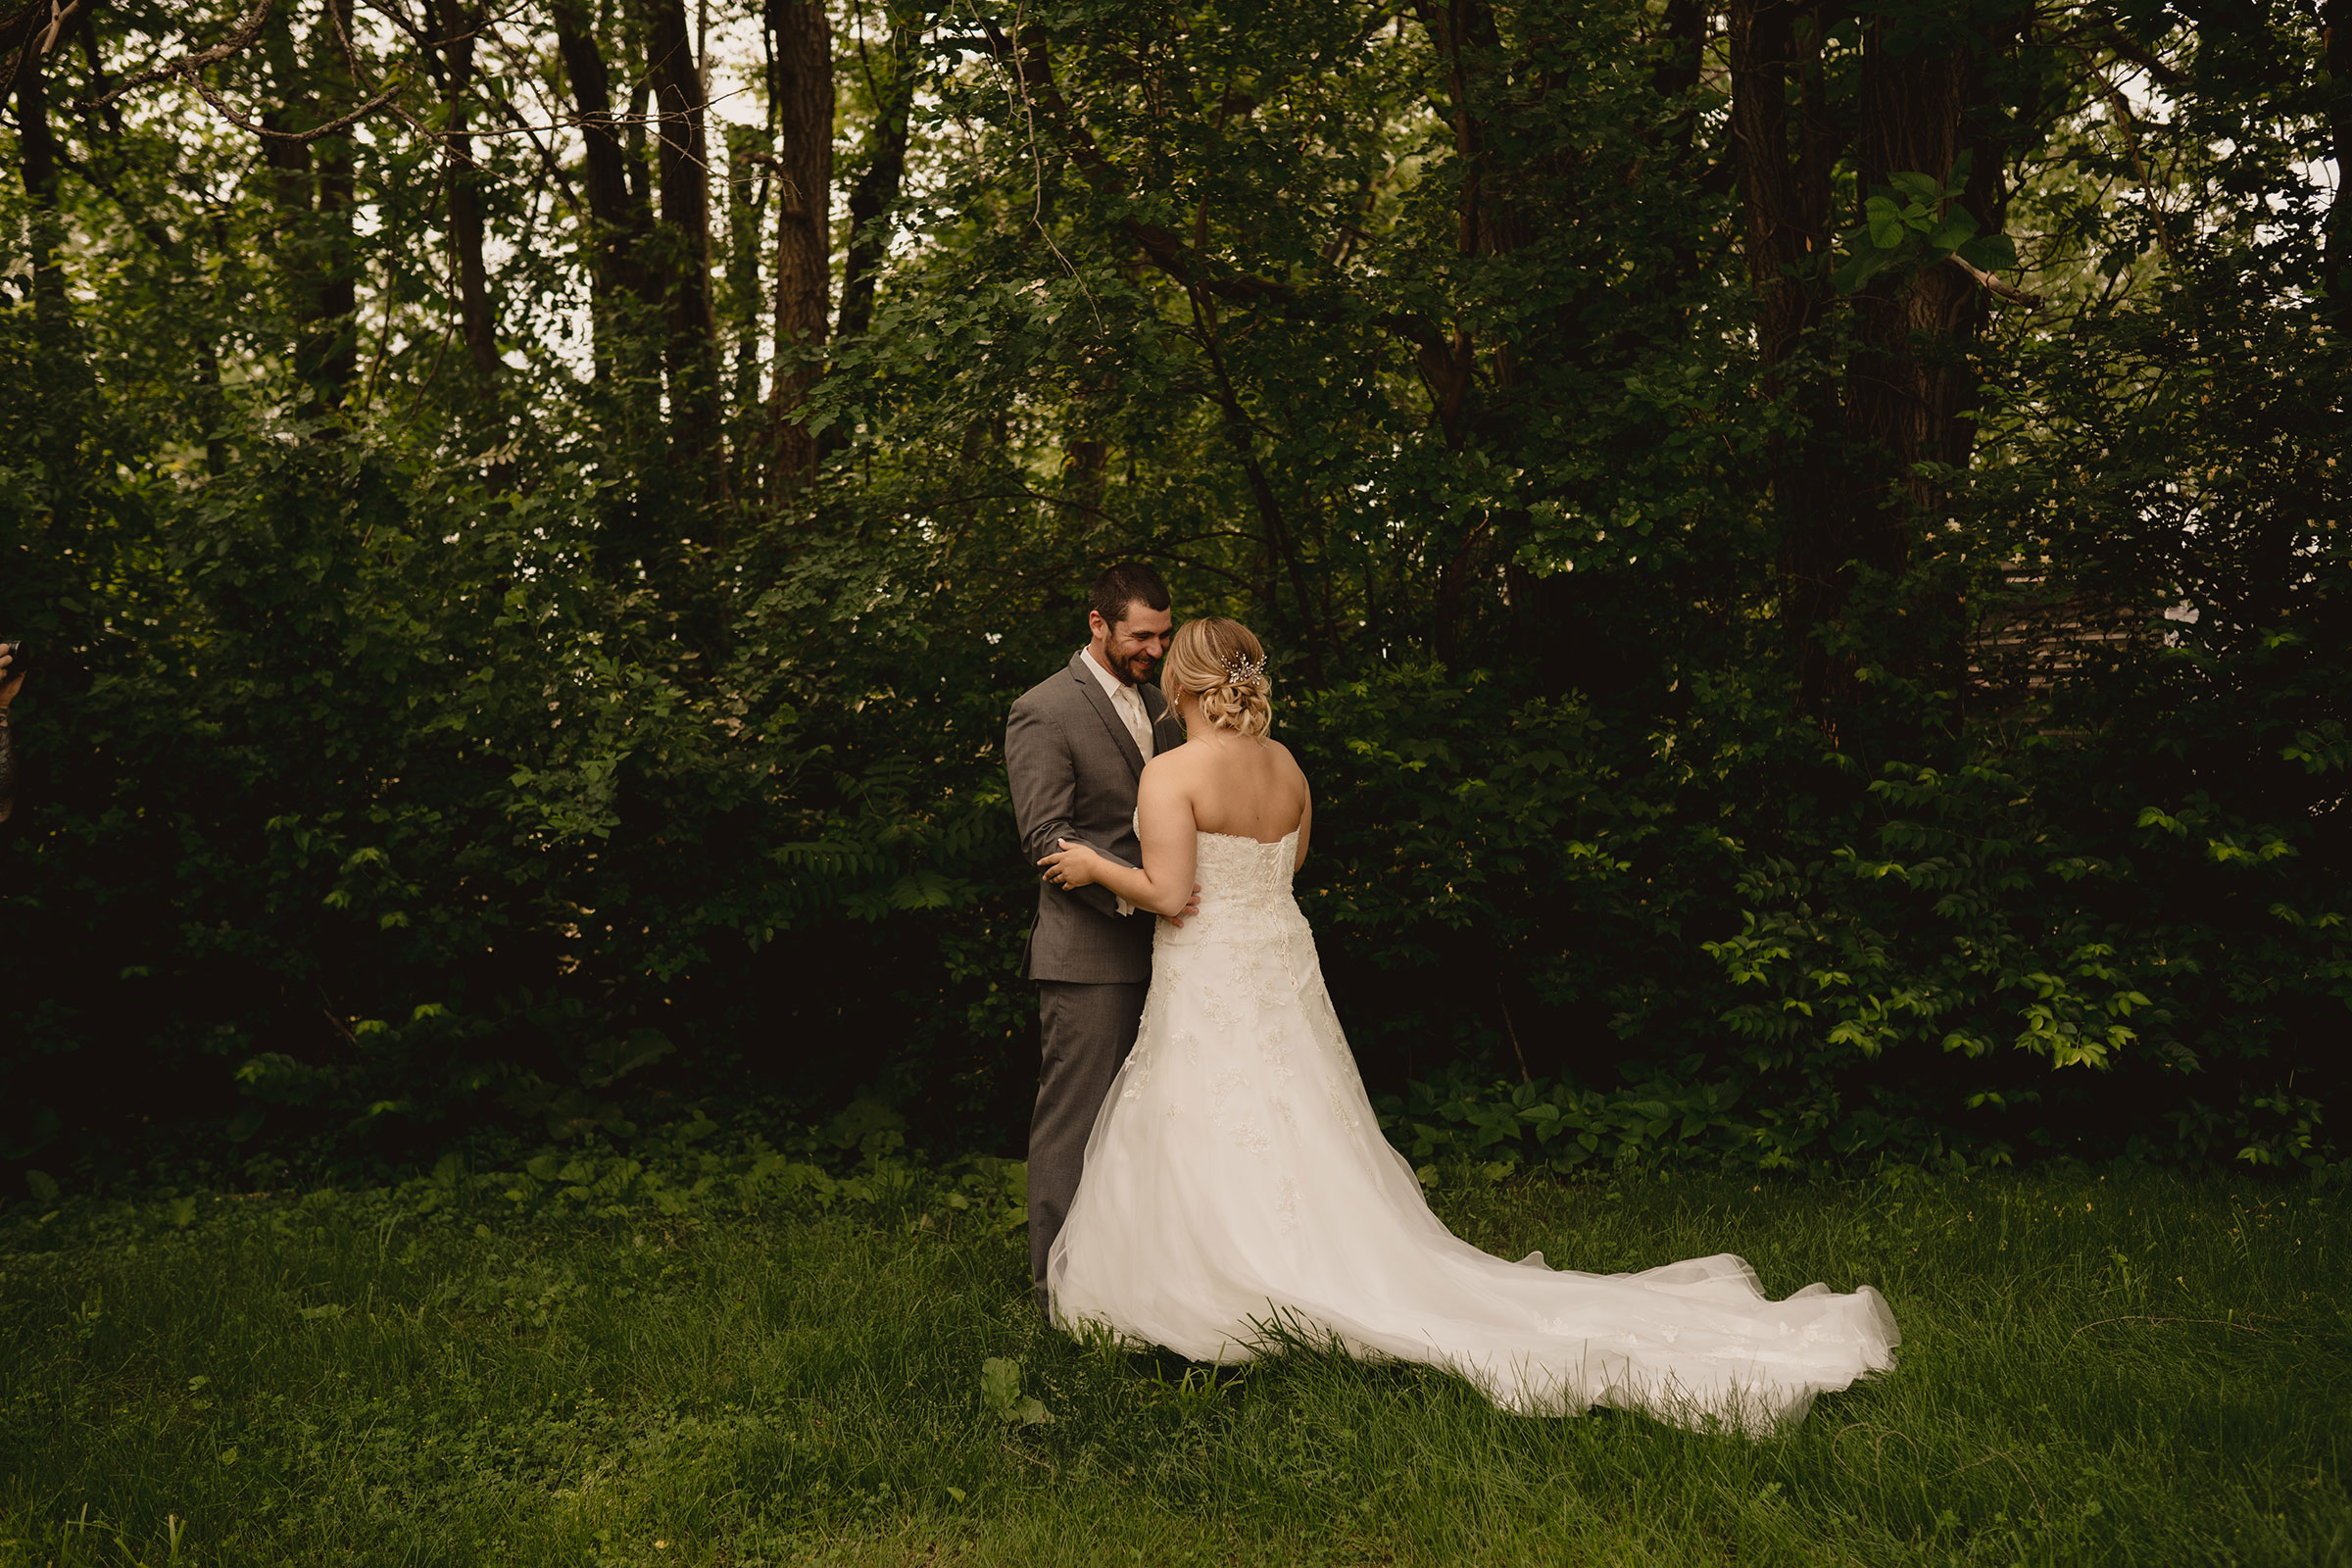 bride-and-groom-first-look-decades-event-center-building-desmoines-iowa-raelyn-ramey-photography..jpg